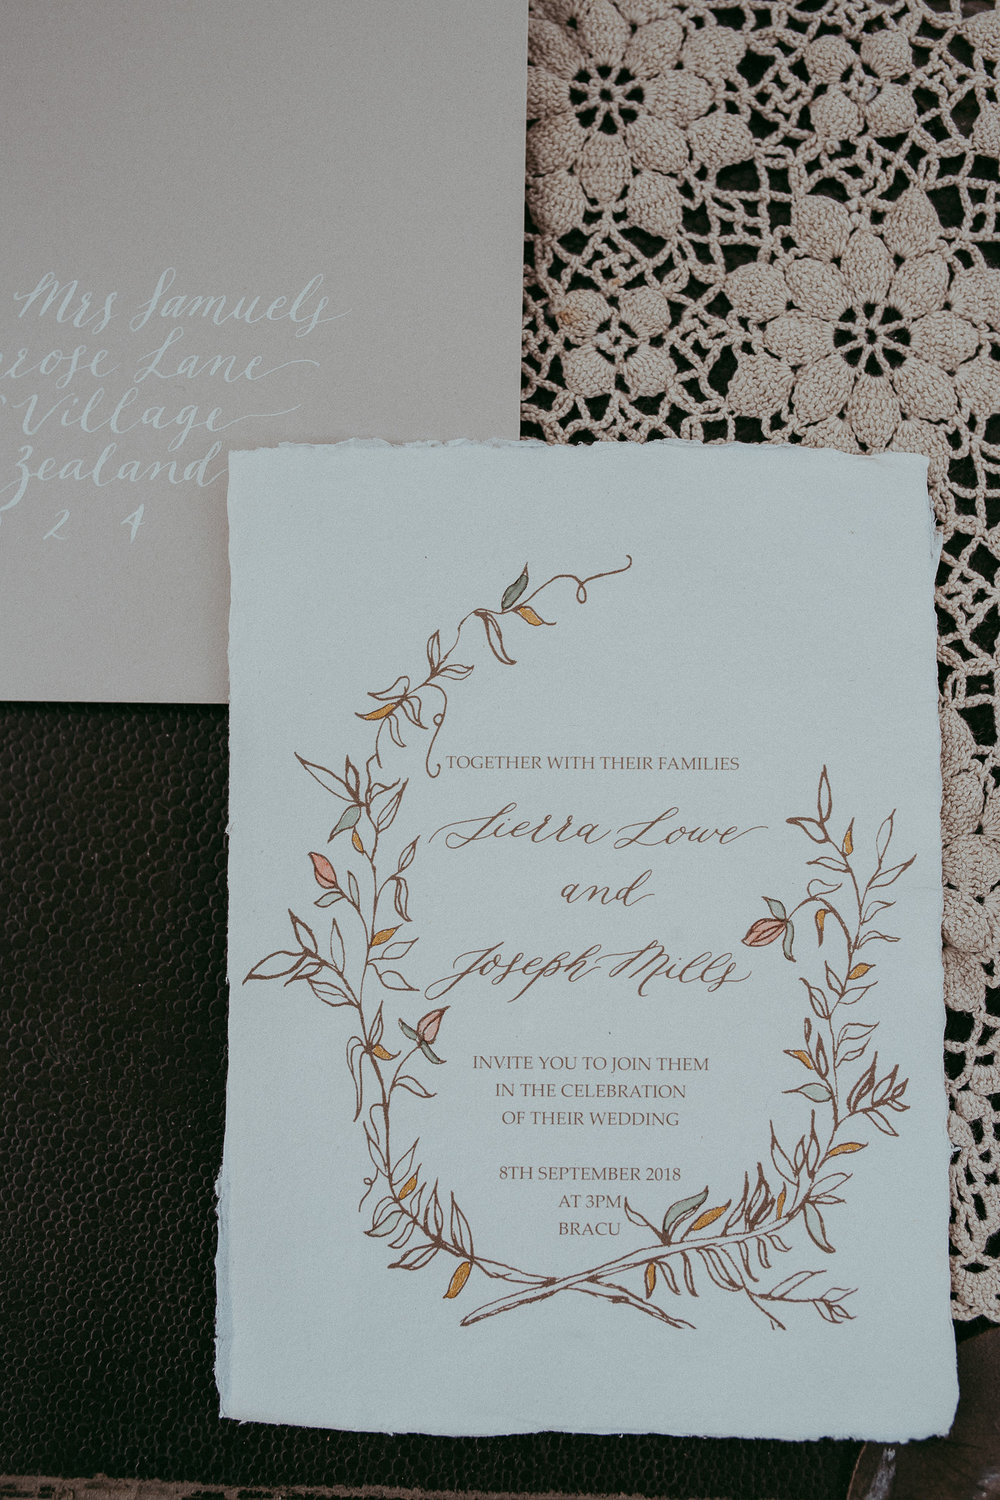 Inkberry calligraphy - image by Levien and Lens photography - Auckland Wedding photographers